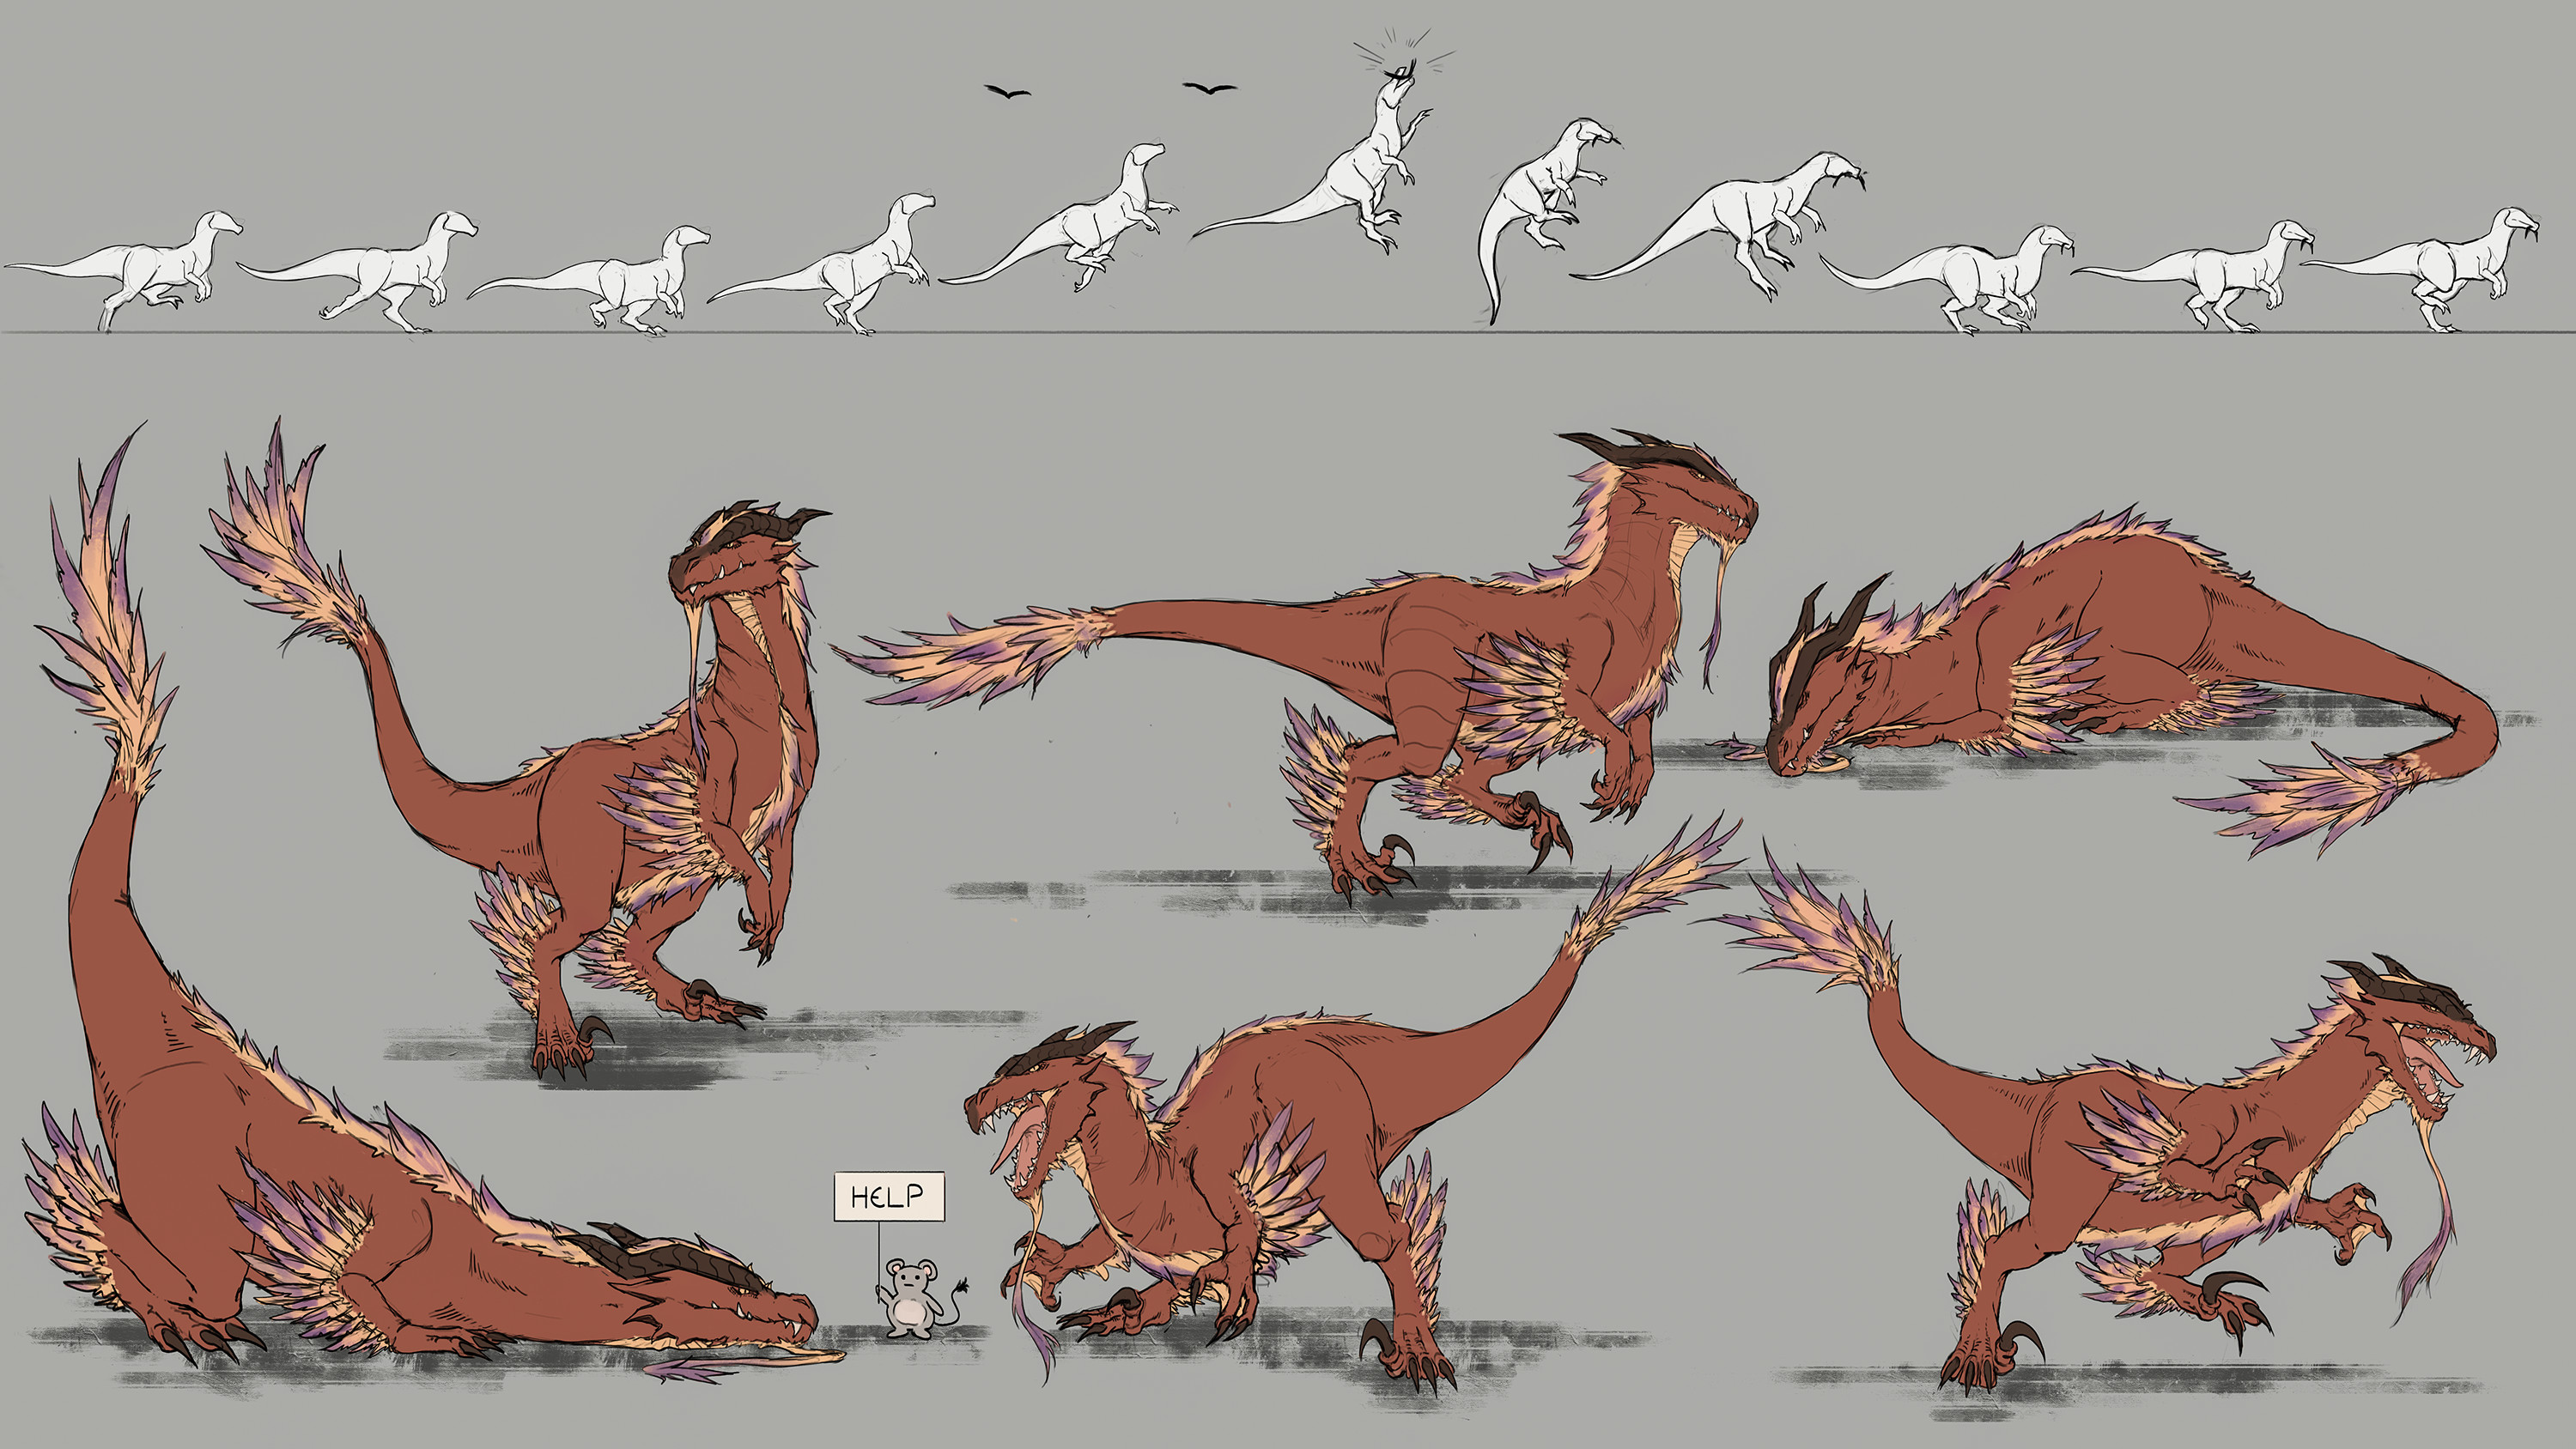 Examples of movement and behavior of the raptor.